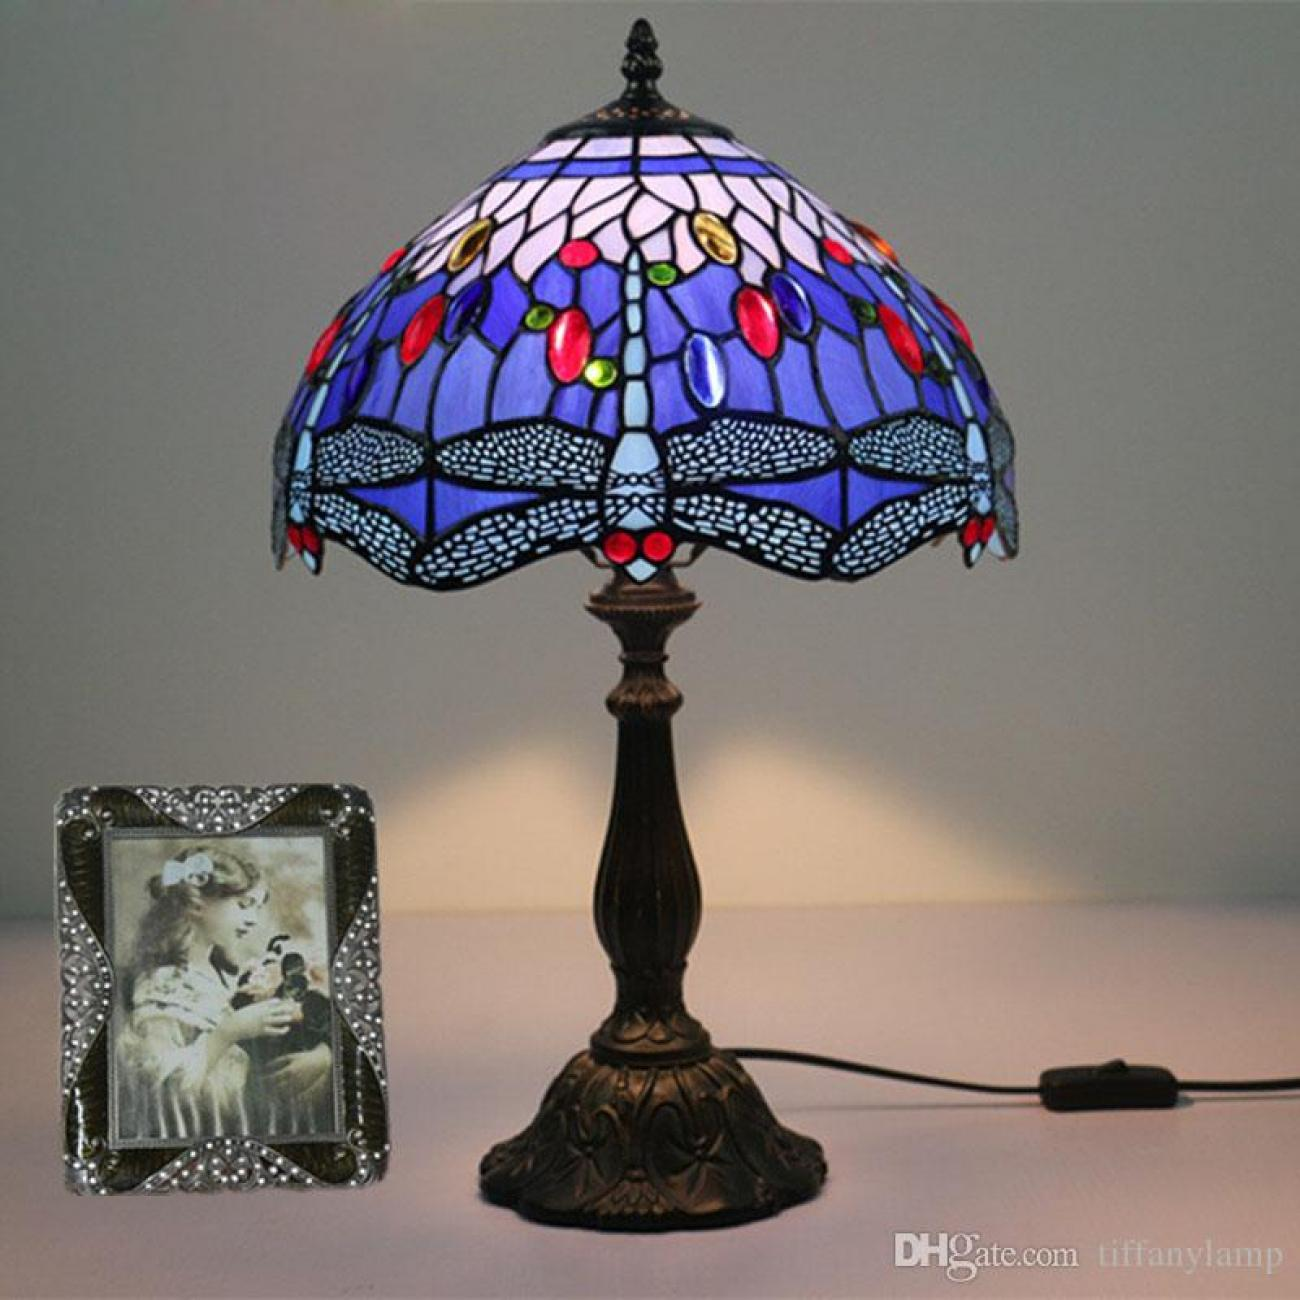 Jewelled Glass Lamp